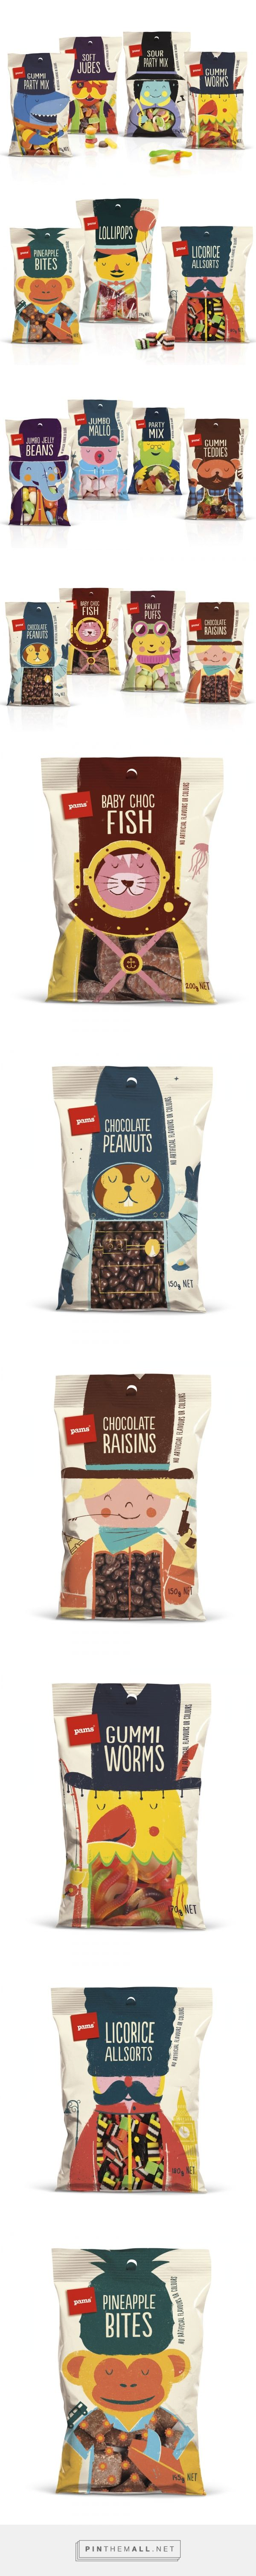 Pams Confectionery Range — The Dieline - Branding & Packaging                                                                                                                                                      More